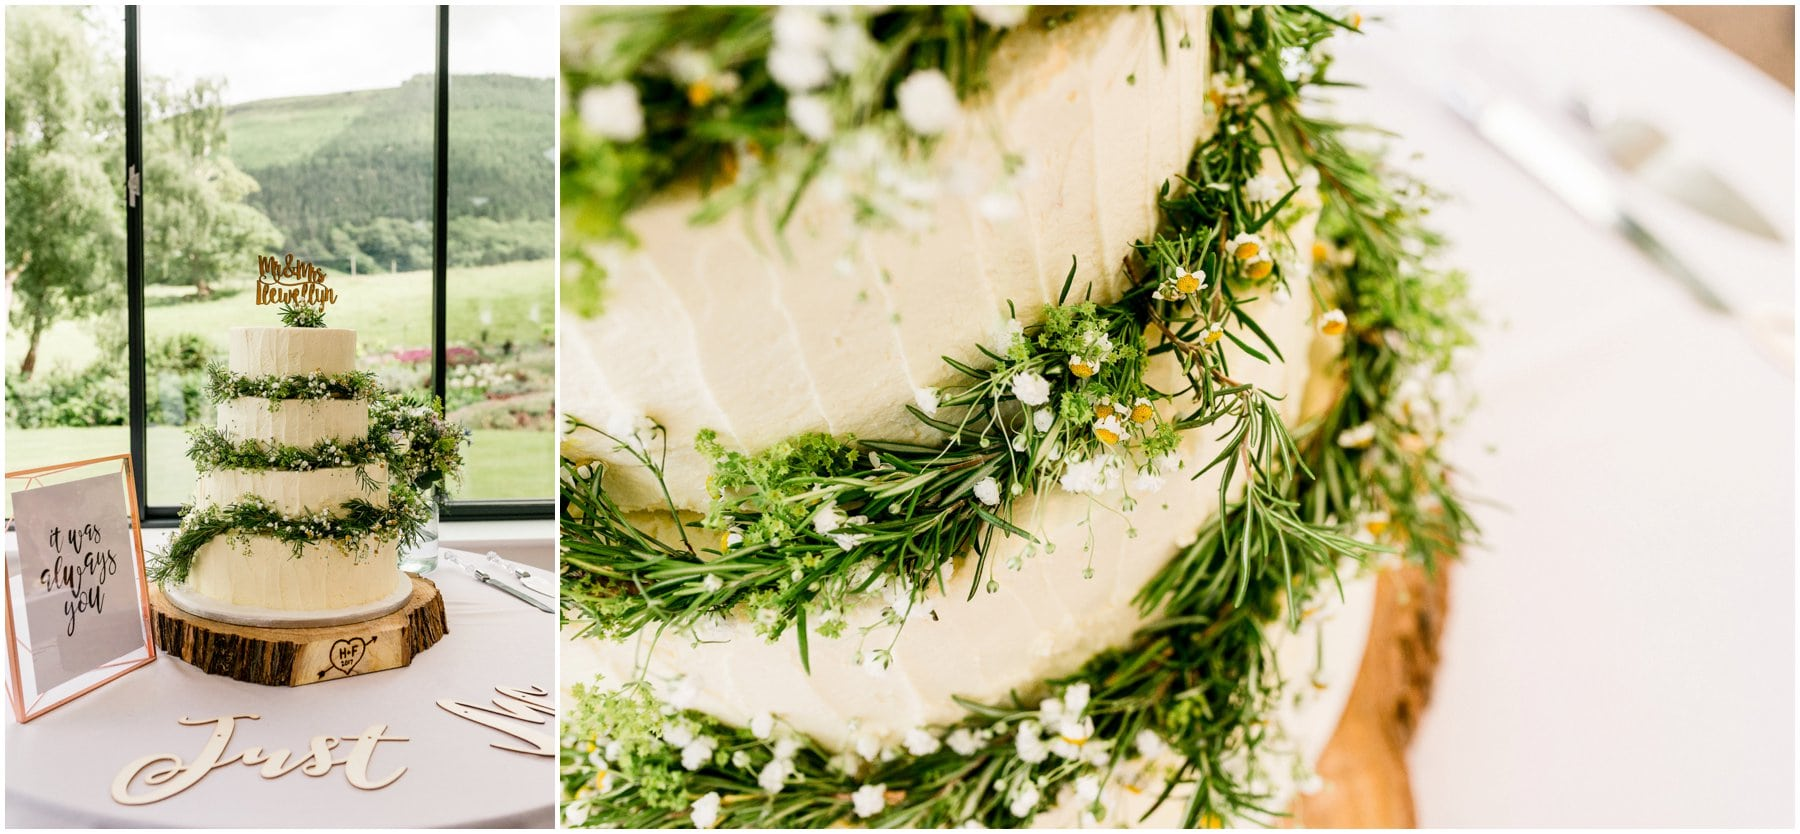 Ffion and Hefin's beautiful, elegant summer wedding at Ten Dwr Hall in Llangollen, Wales with wild flowers and sage colours by West Midlands and Wales Wedding photographer Lisa Carpenter Photography, specialising in cool, contemporary wedding photos. Wedding cake with green foliage and flowers.